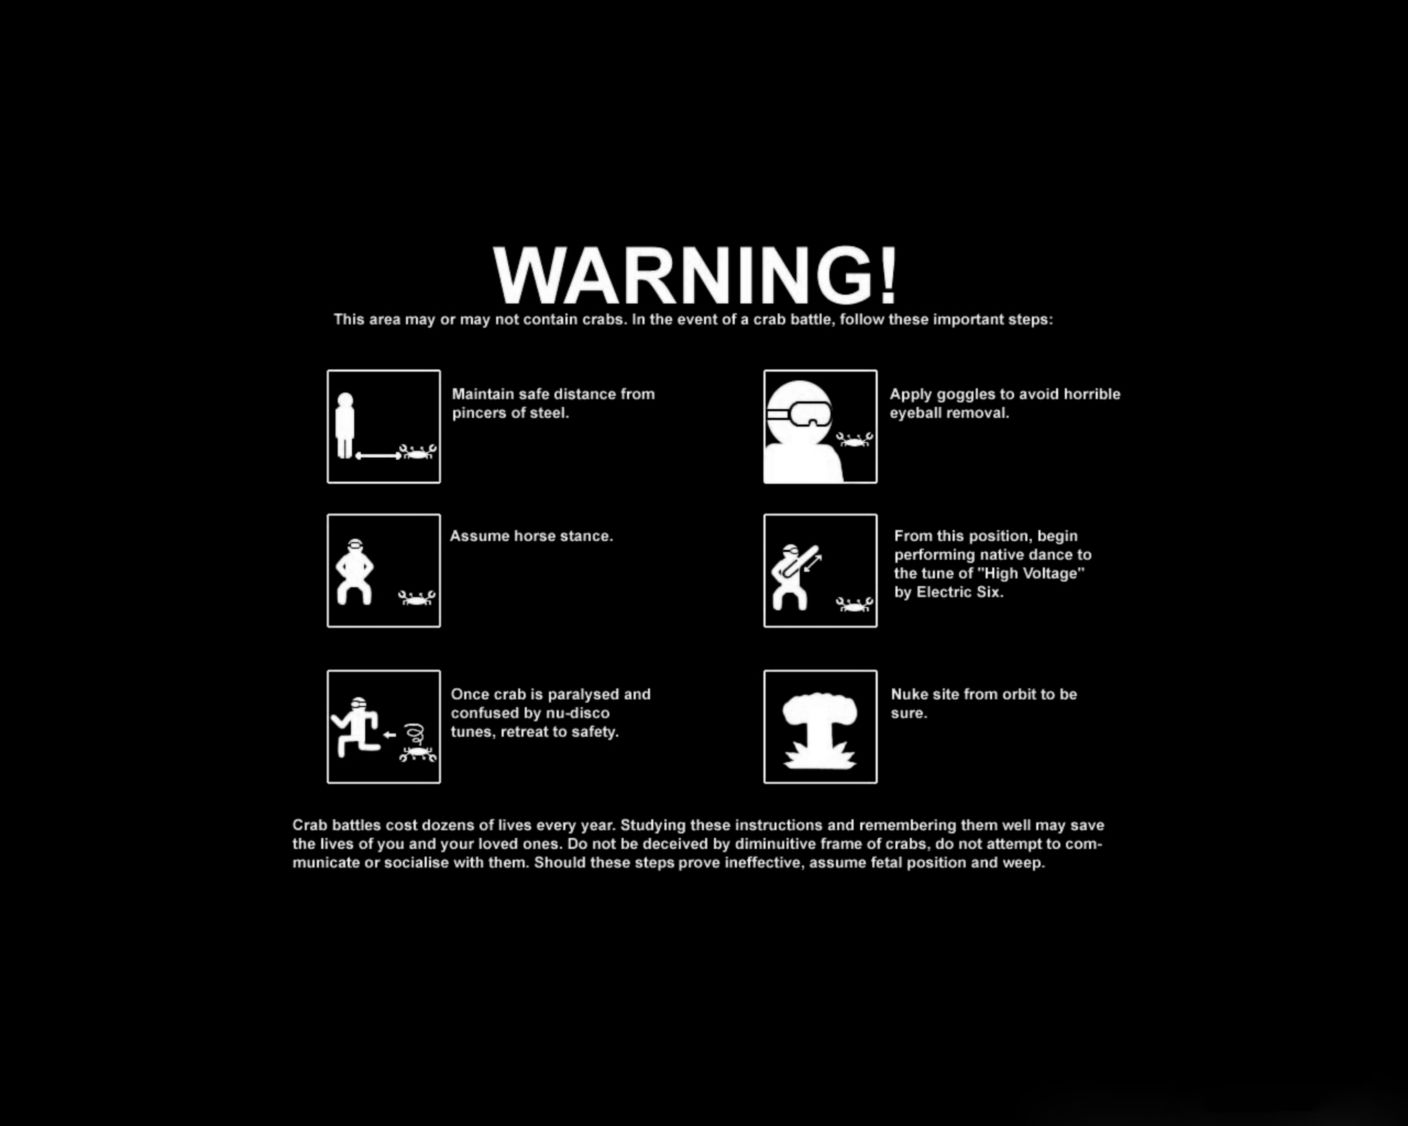 Warning funny wallpaper desktop hd wallpaper download free image warning funny wallpaper voltagebd Image collections